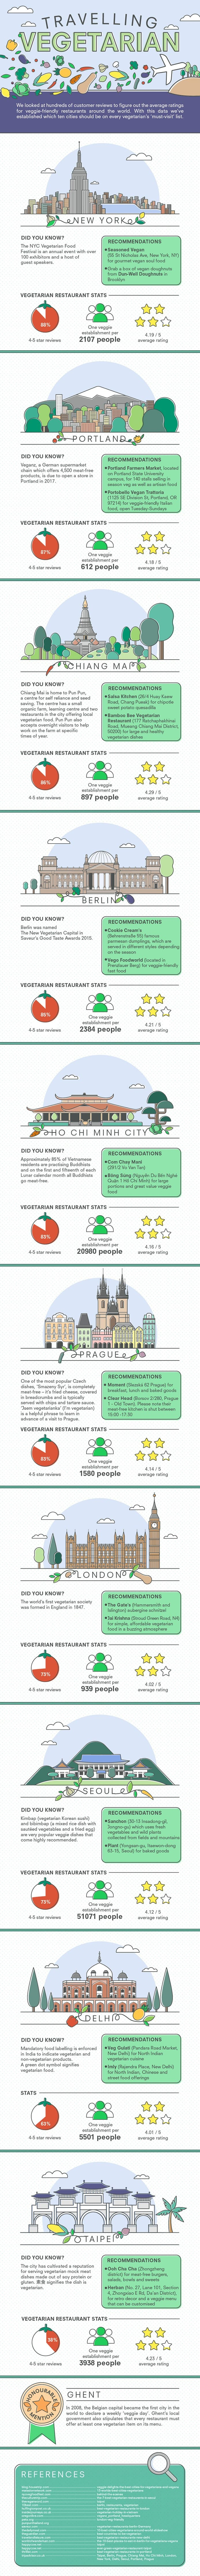 vegetarian-friendly-cities-infographic-1